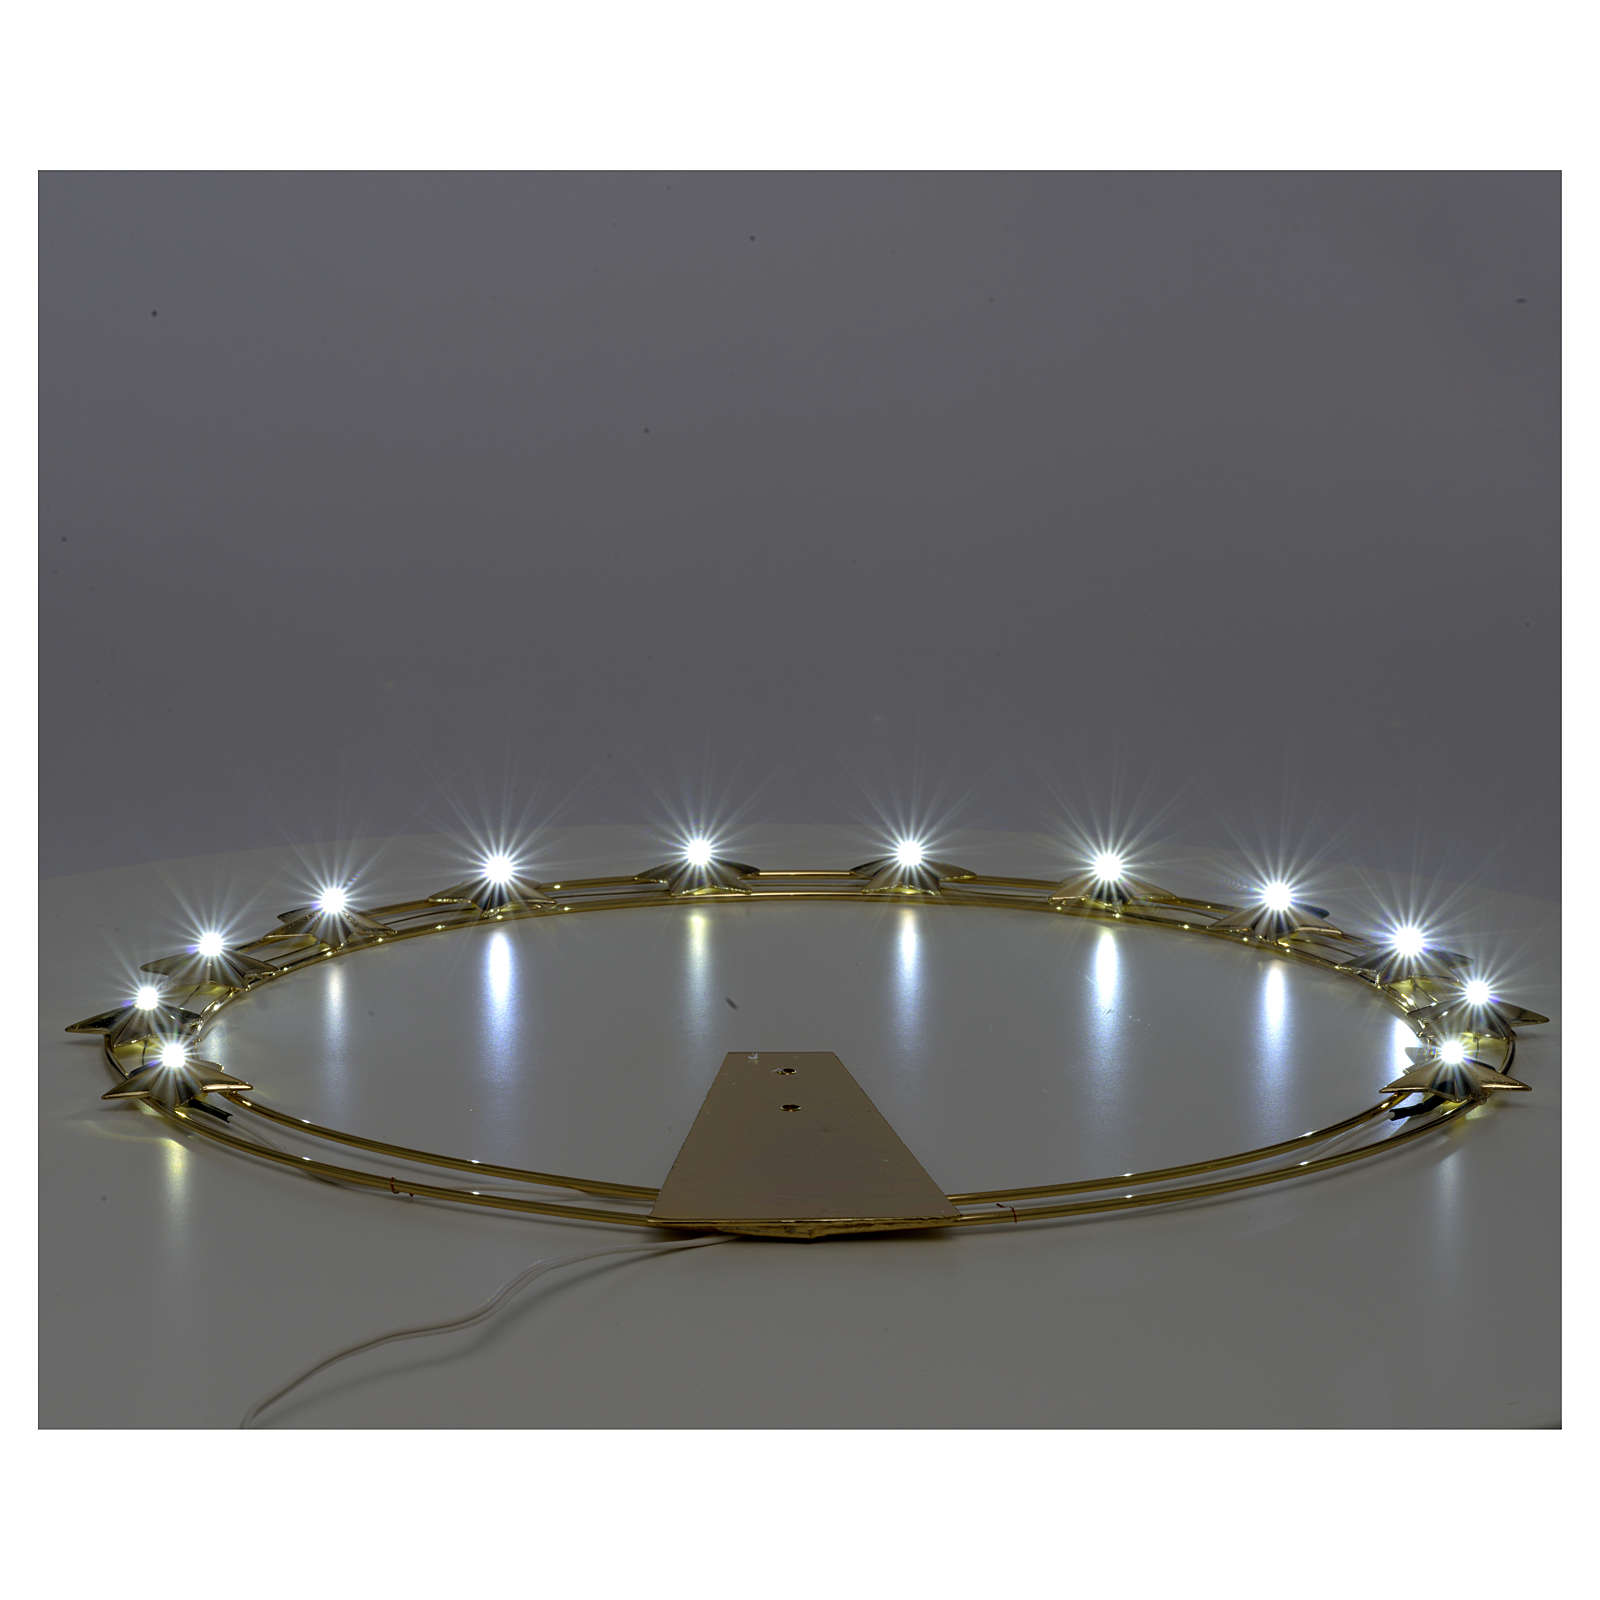 Stellario con LED in ottone 40 cm 3